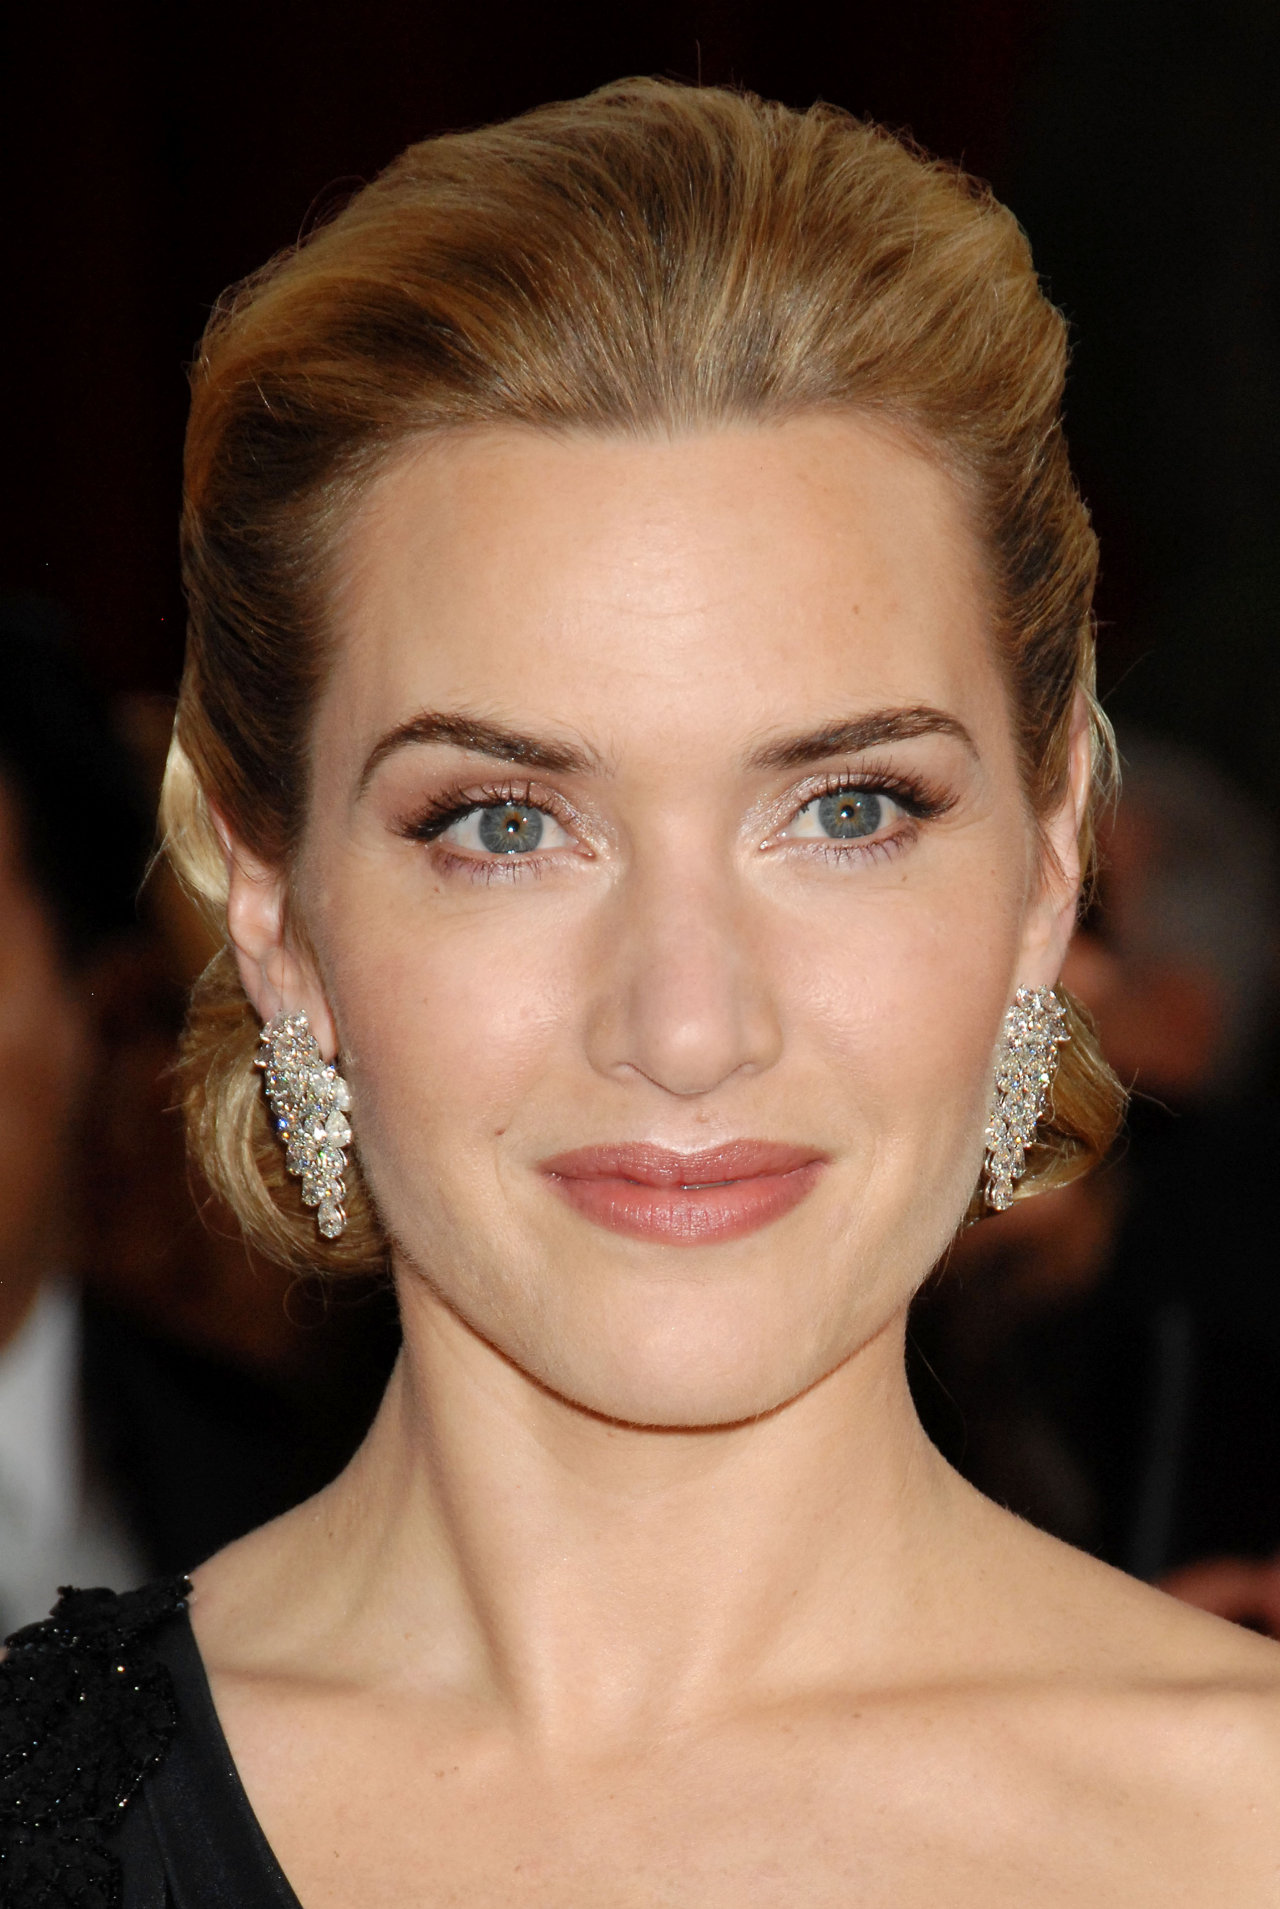 Kate Winslet leaked wallpapers